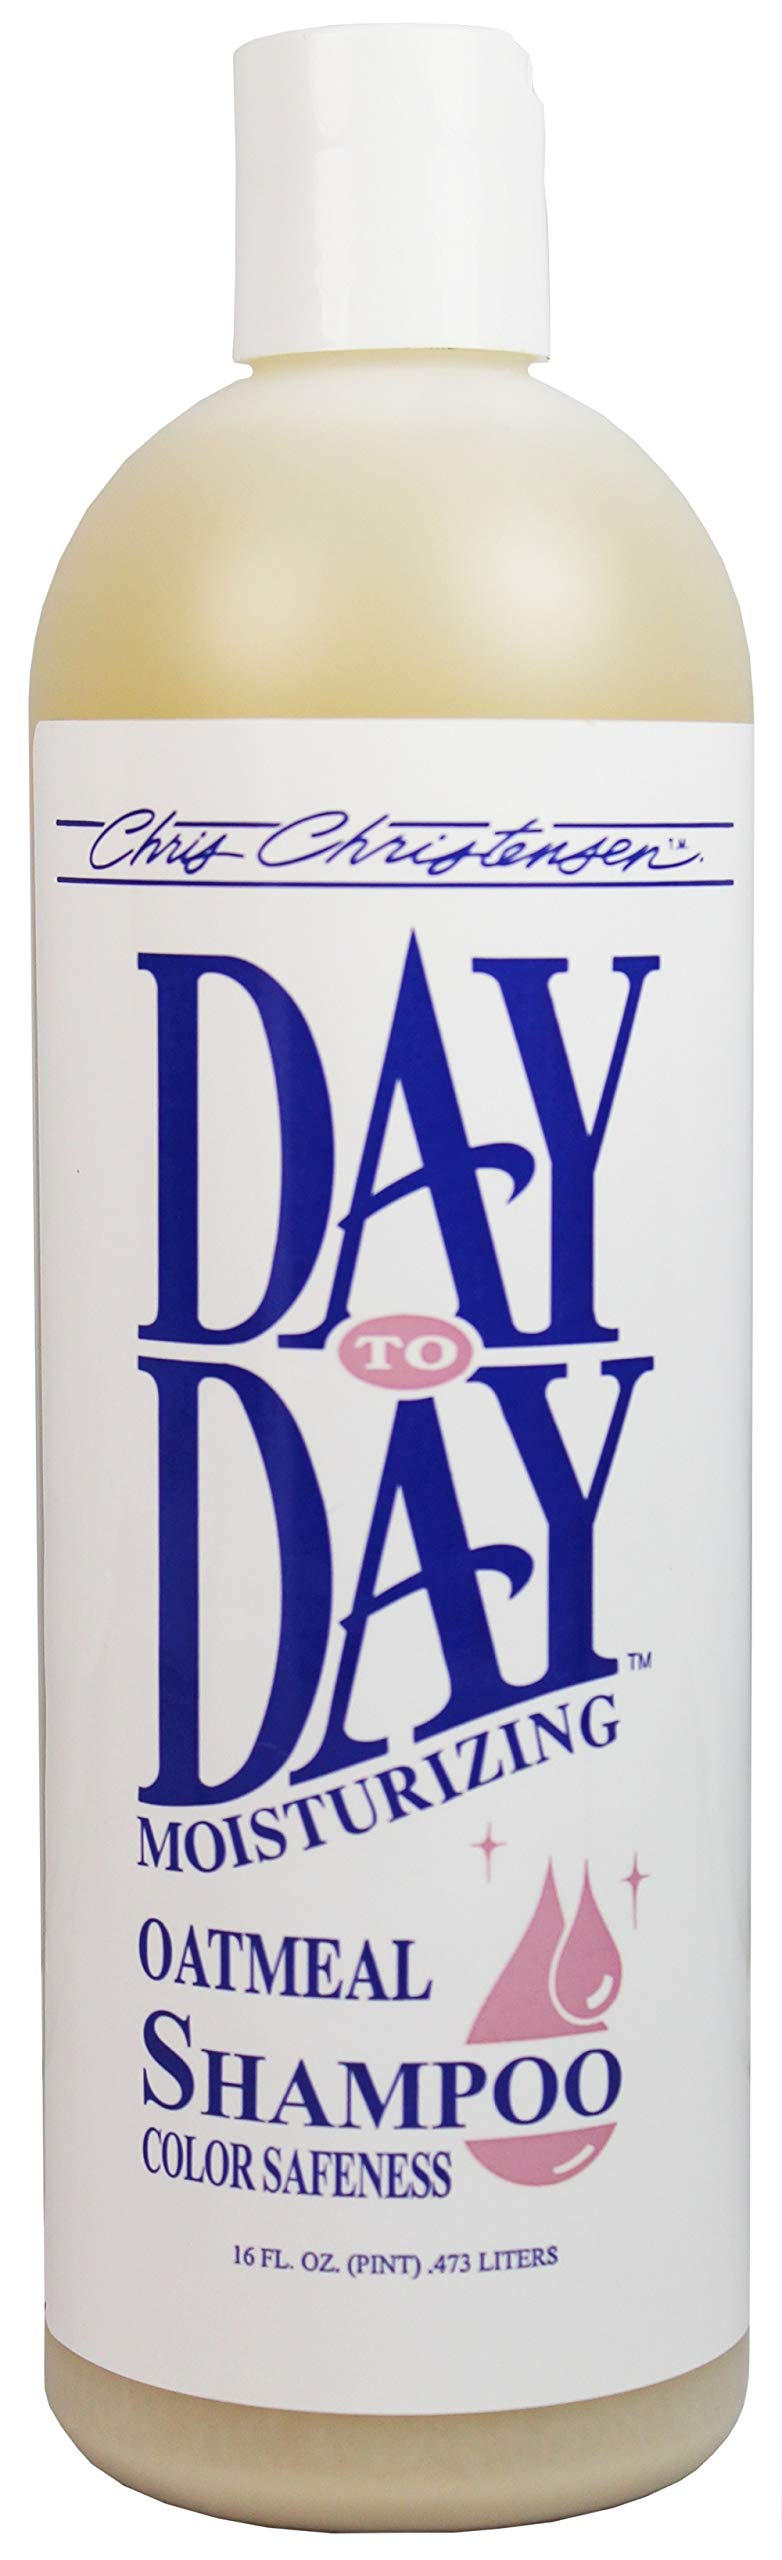 Chris Christensen Day to Day Oatmeal Shampoo (16 Ounce)